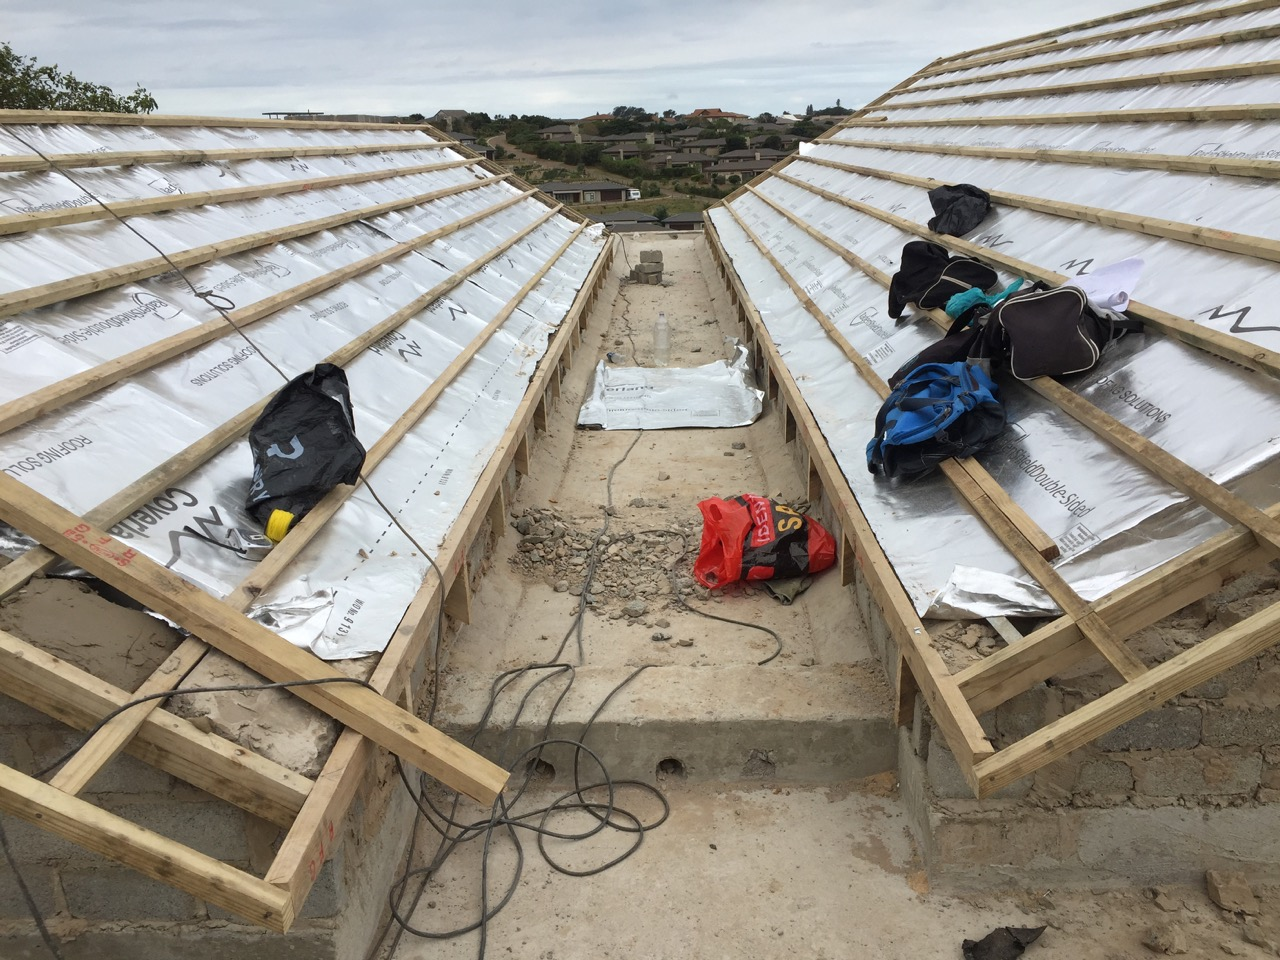 Flat slab between pitched roofs